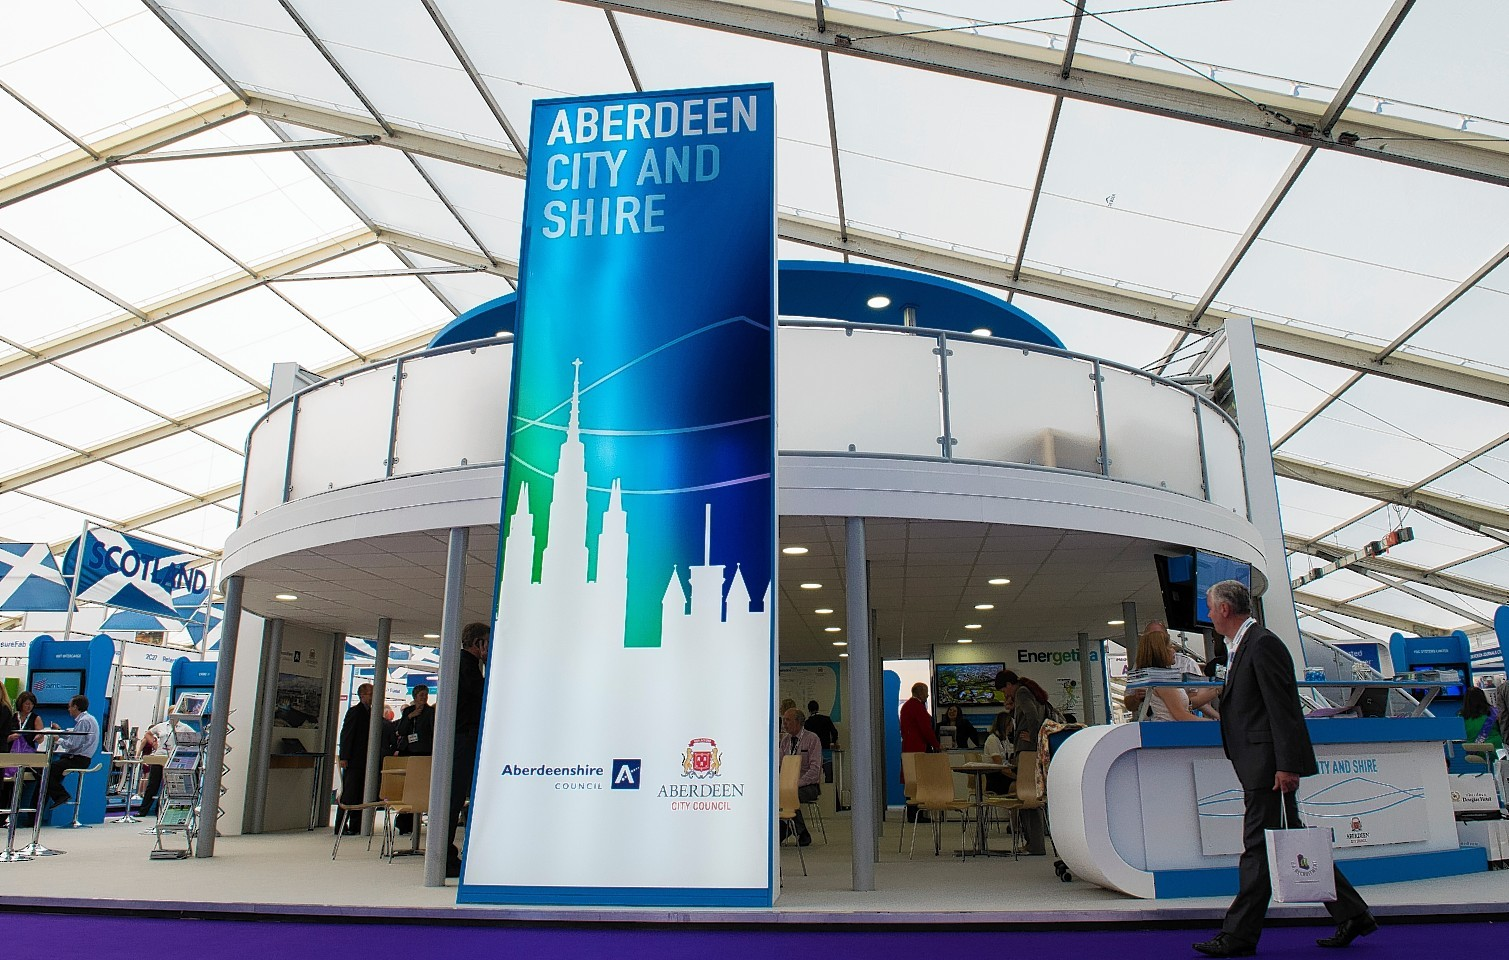 Second best ever attendance for City's energy conference